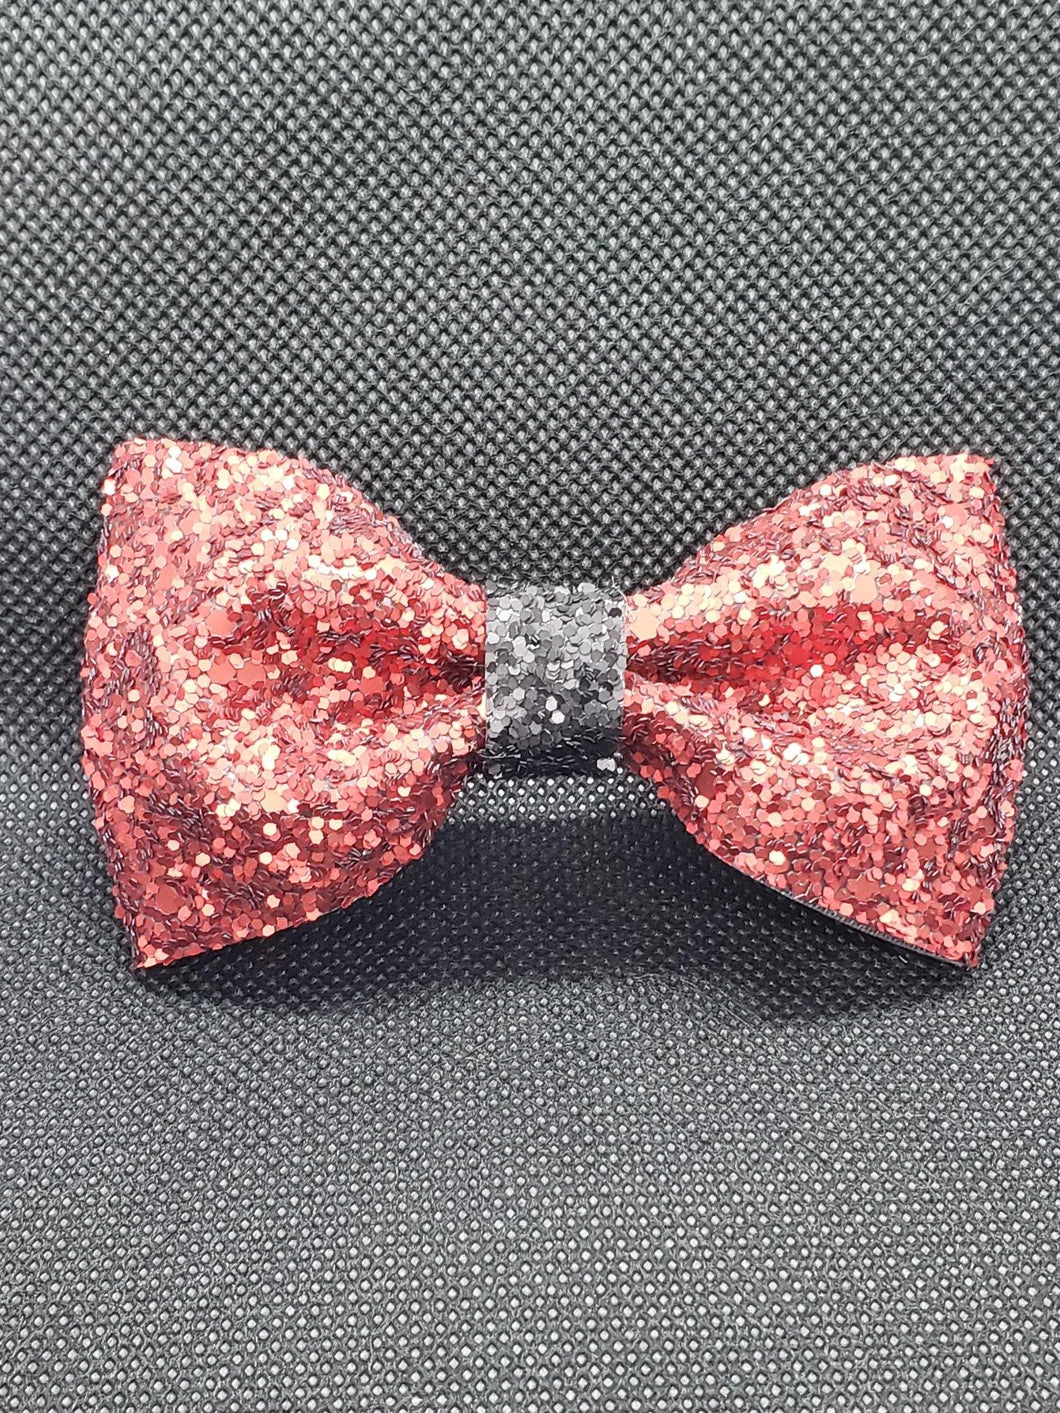 Boys Bow Ties - LilChic BabyBug Boutique LLC